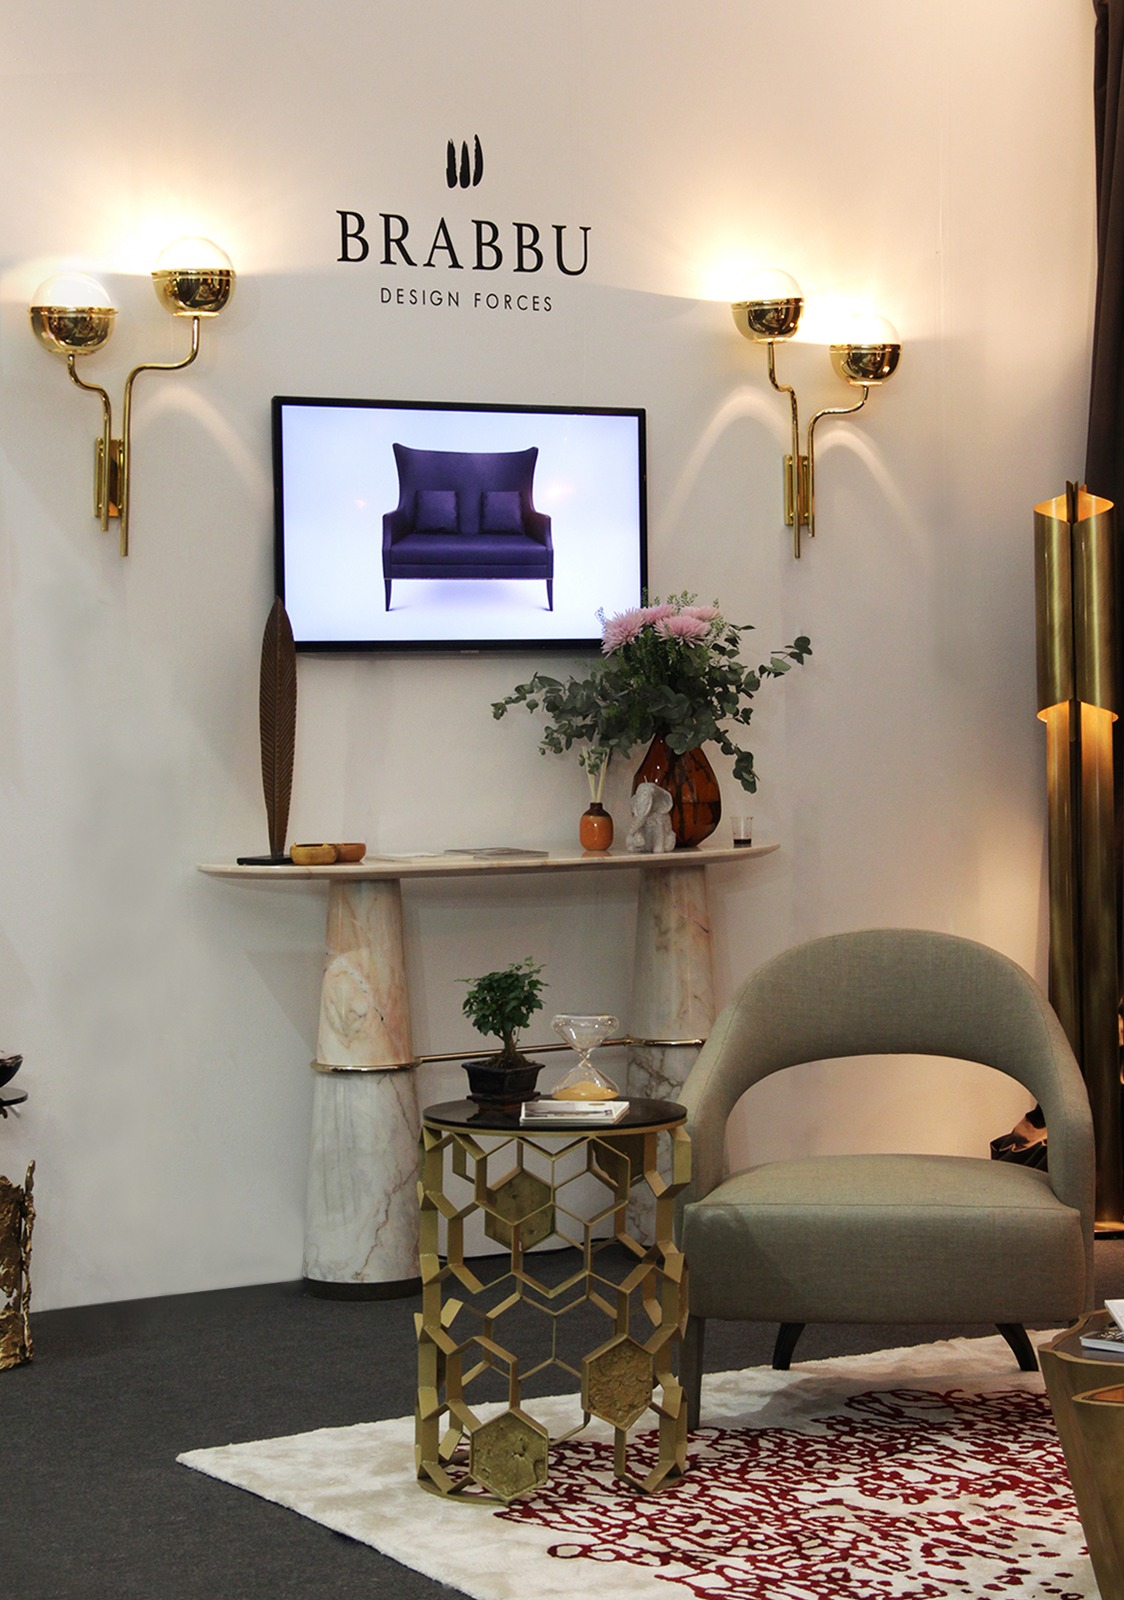 Decorex International 2016  decorex international 2016 The Best Stands at Decorex International 2016 Get Inside Decorex International 2016 Take the First Look 8